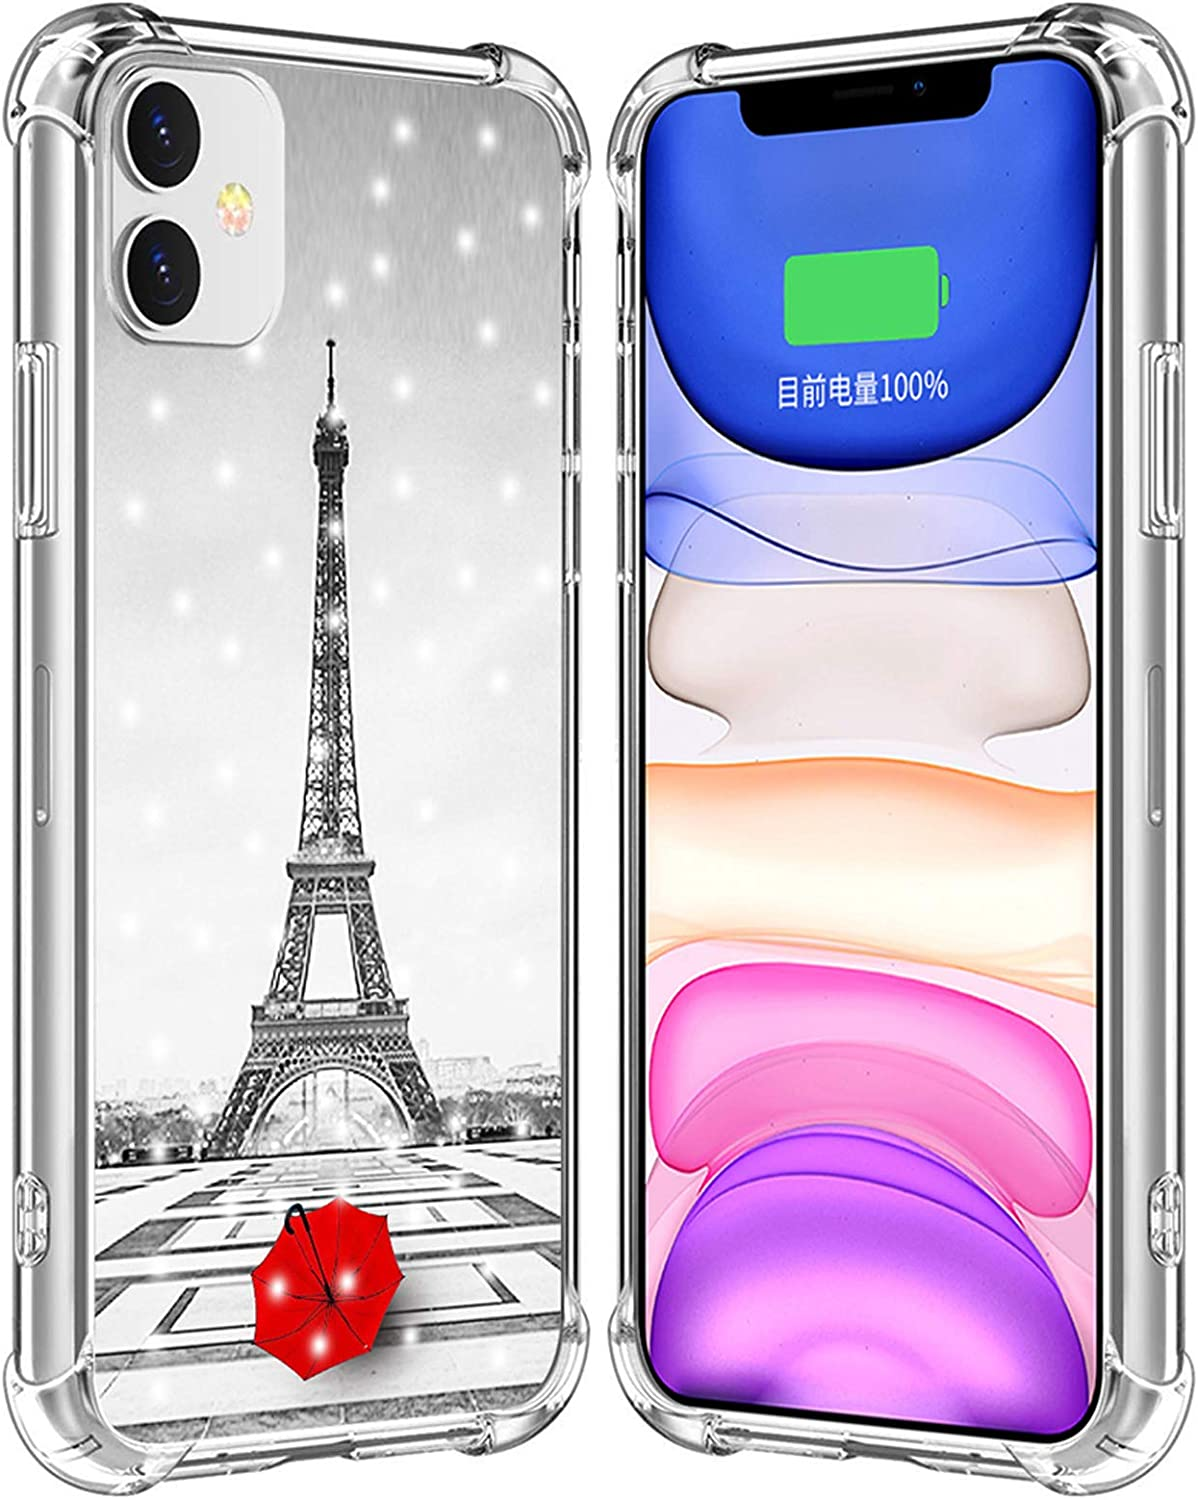 Case for iPhone 12 Eiffel Tower/IWONE Designer Rubber Durable Protective Skin Cover Shockproof Compatible for iPhone 12 5G 5.4 Inches Get Lost in Paris Creative Romantic Eiffel Tower Design